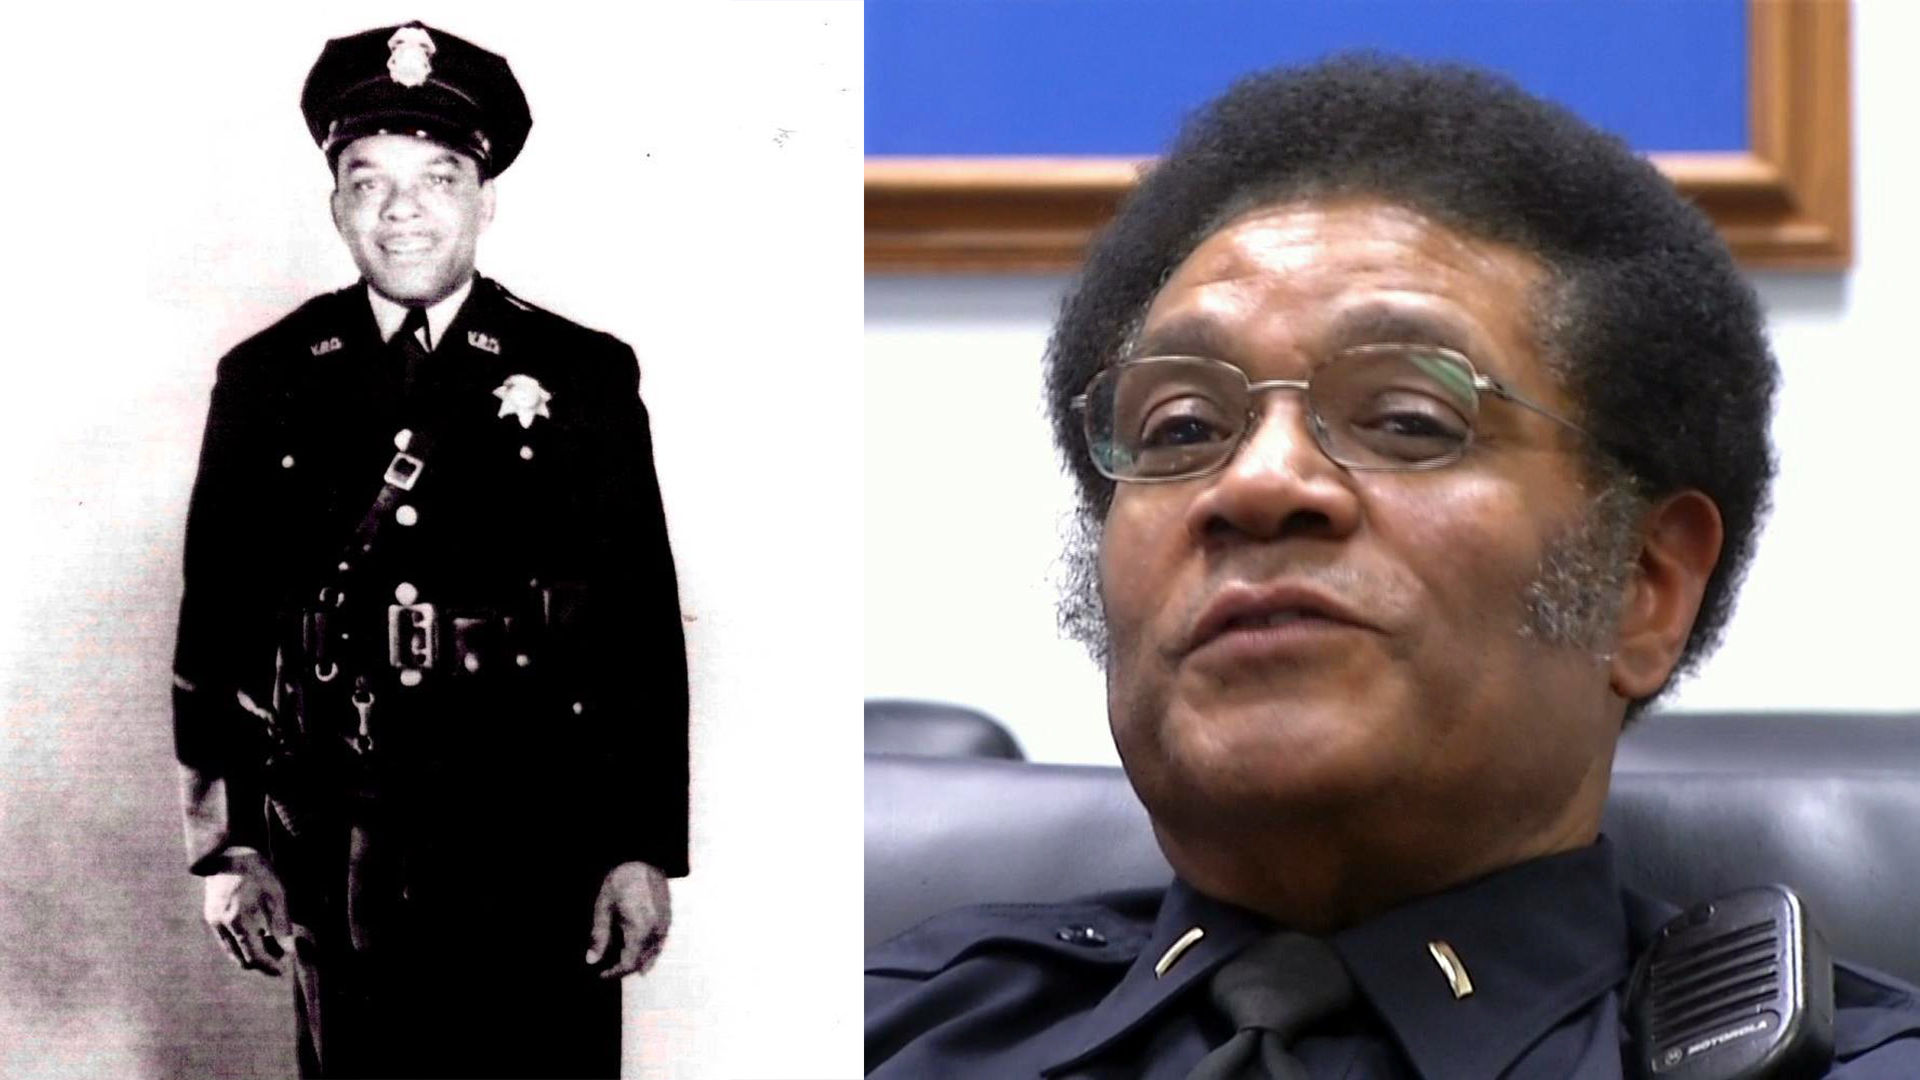 Alfred Robinson was the City of Vallejo's first African-American police officer. His 64-year-old son, Lt. Herman Robinson, is the Vallejo Police Department's longest-serving officer in its history.